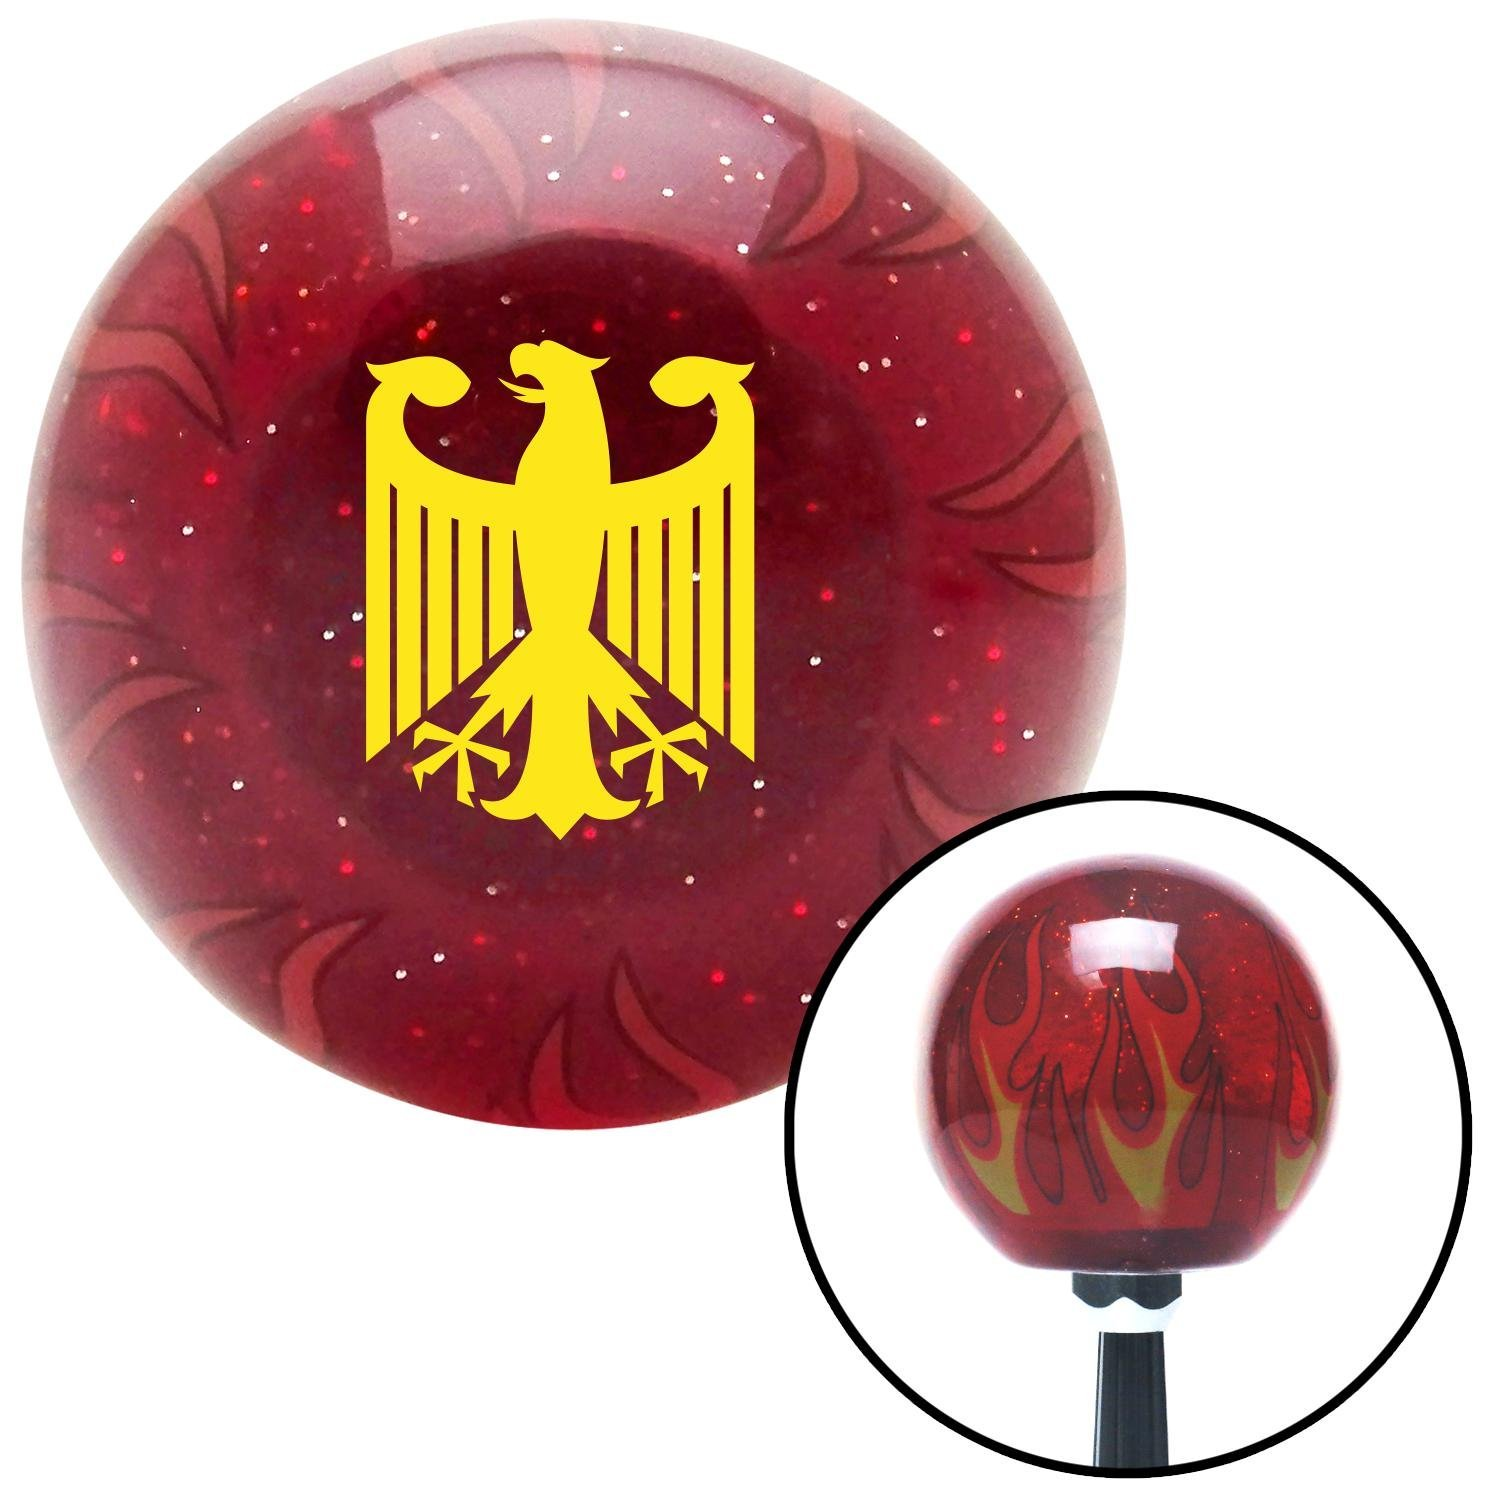 American Shifter 237200 Red Flame Metal Flake Shift Knob with M16 x 1.5 Insert Yellow Eagle Coat of Arms